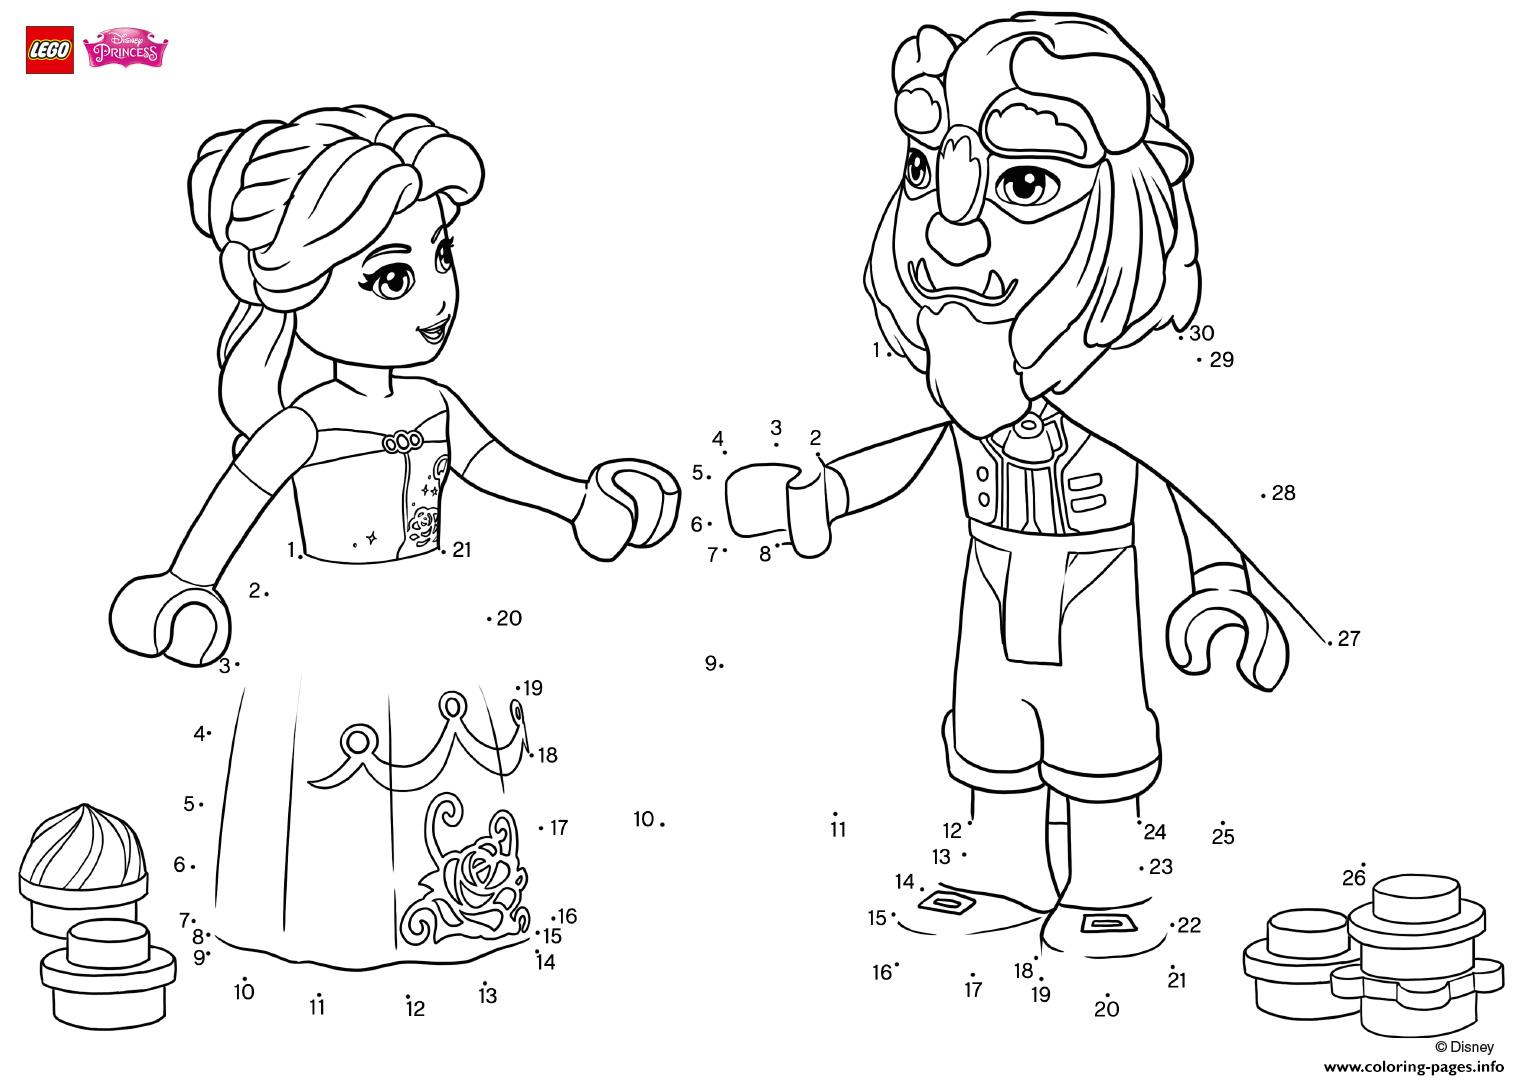 Have Fun Completing The Drawing Of Beauty And The Beast Lego Disney ...